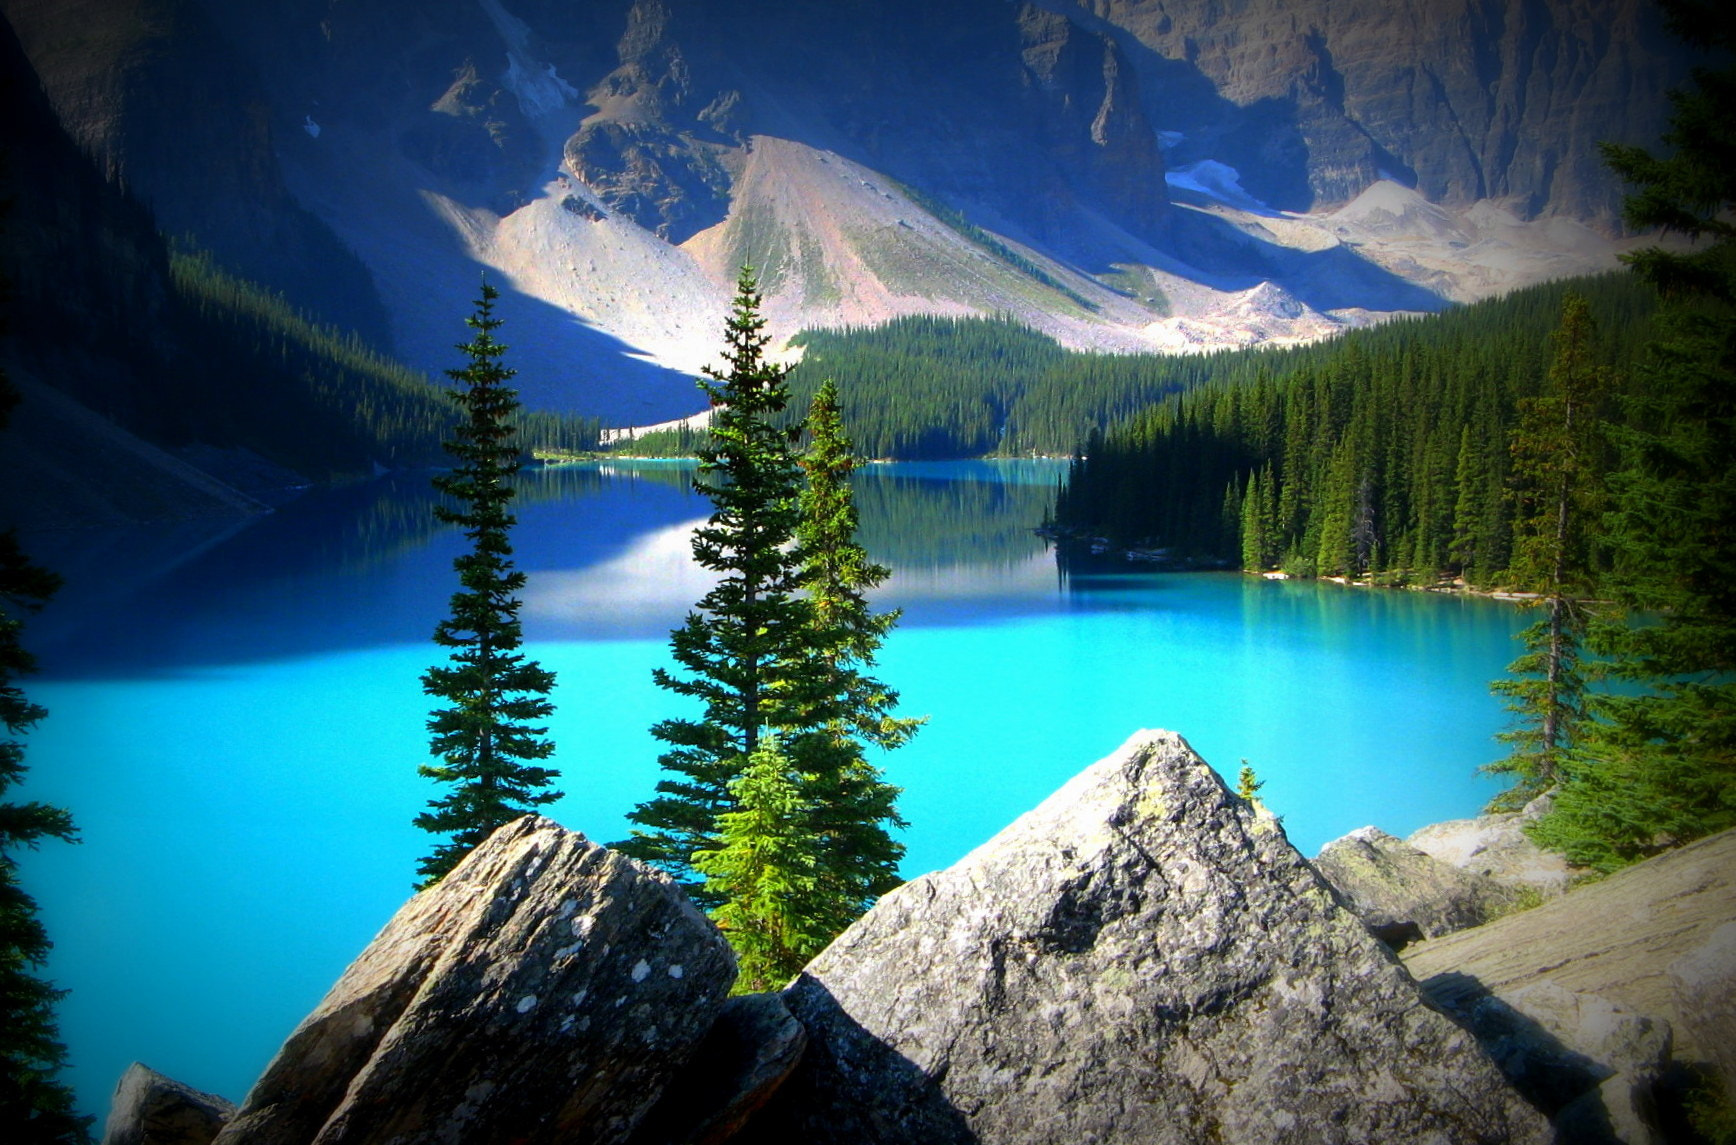 Photograph The turquoise lake by CAN4 on 500px